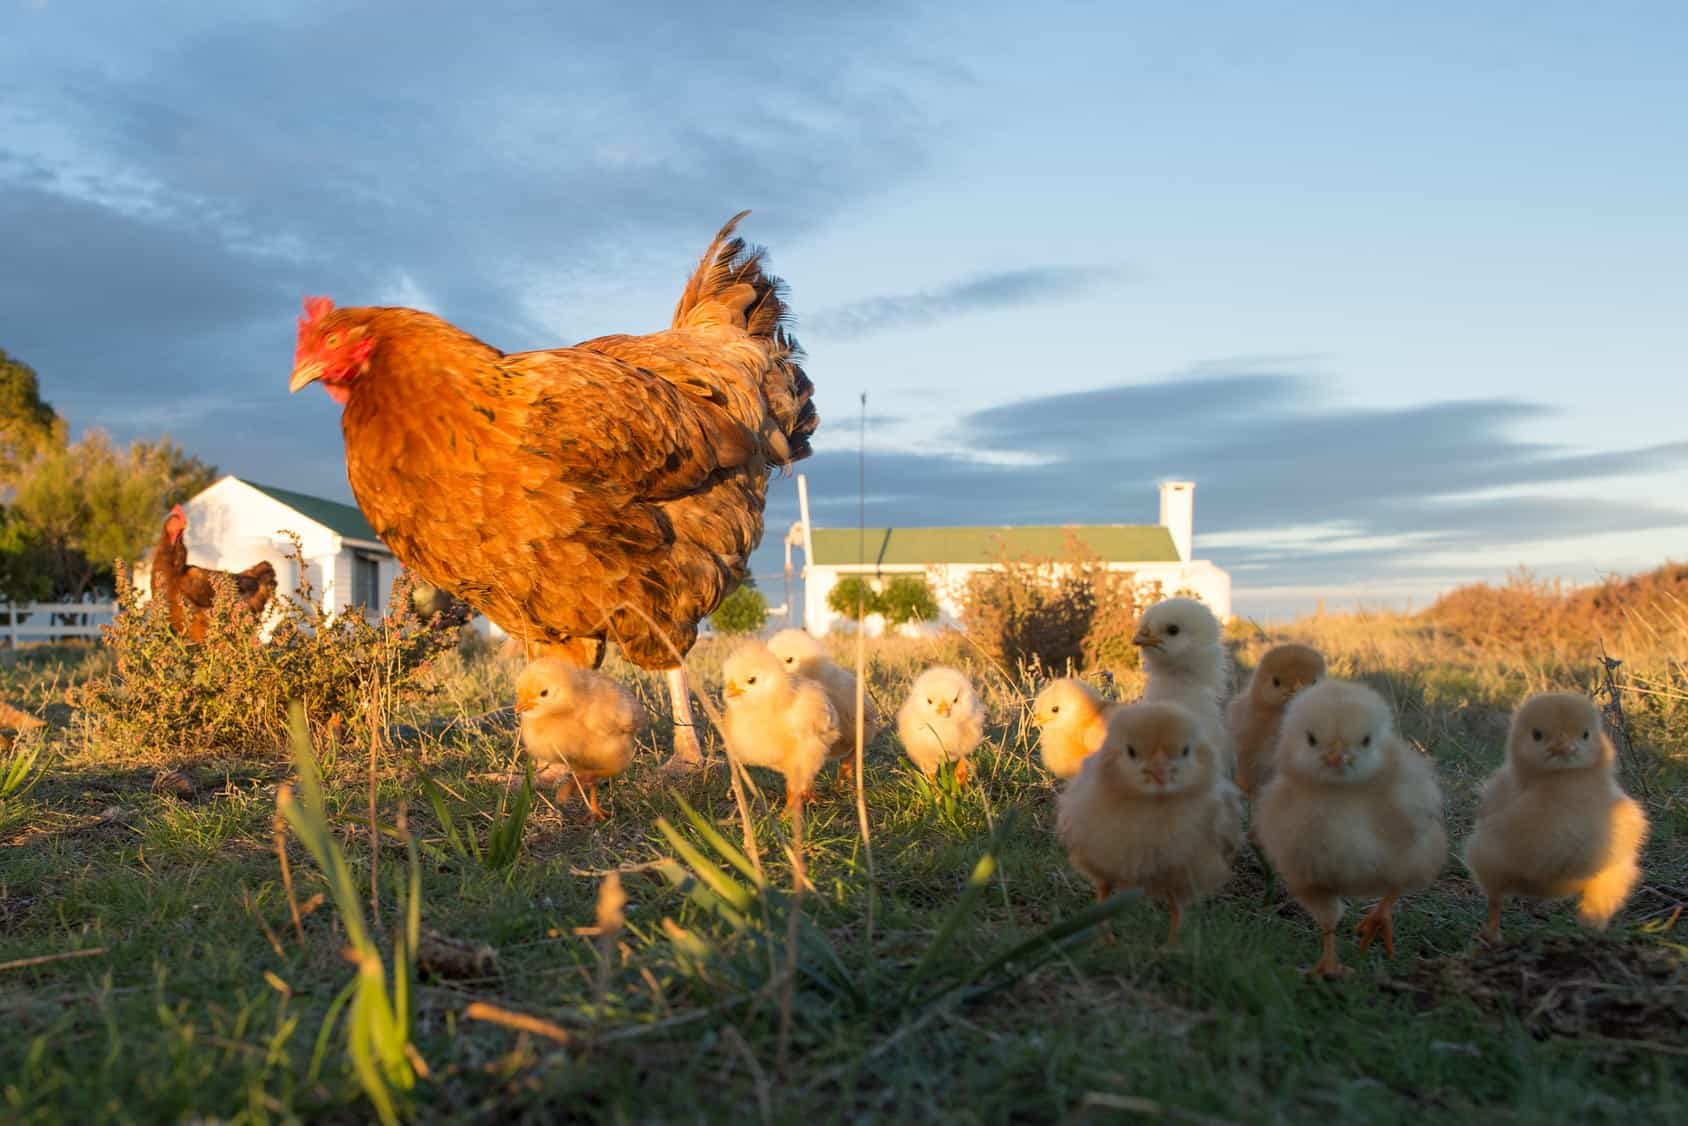 Hen and chicks on farm